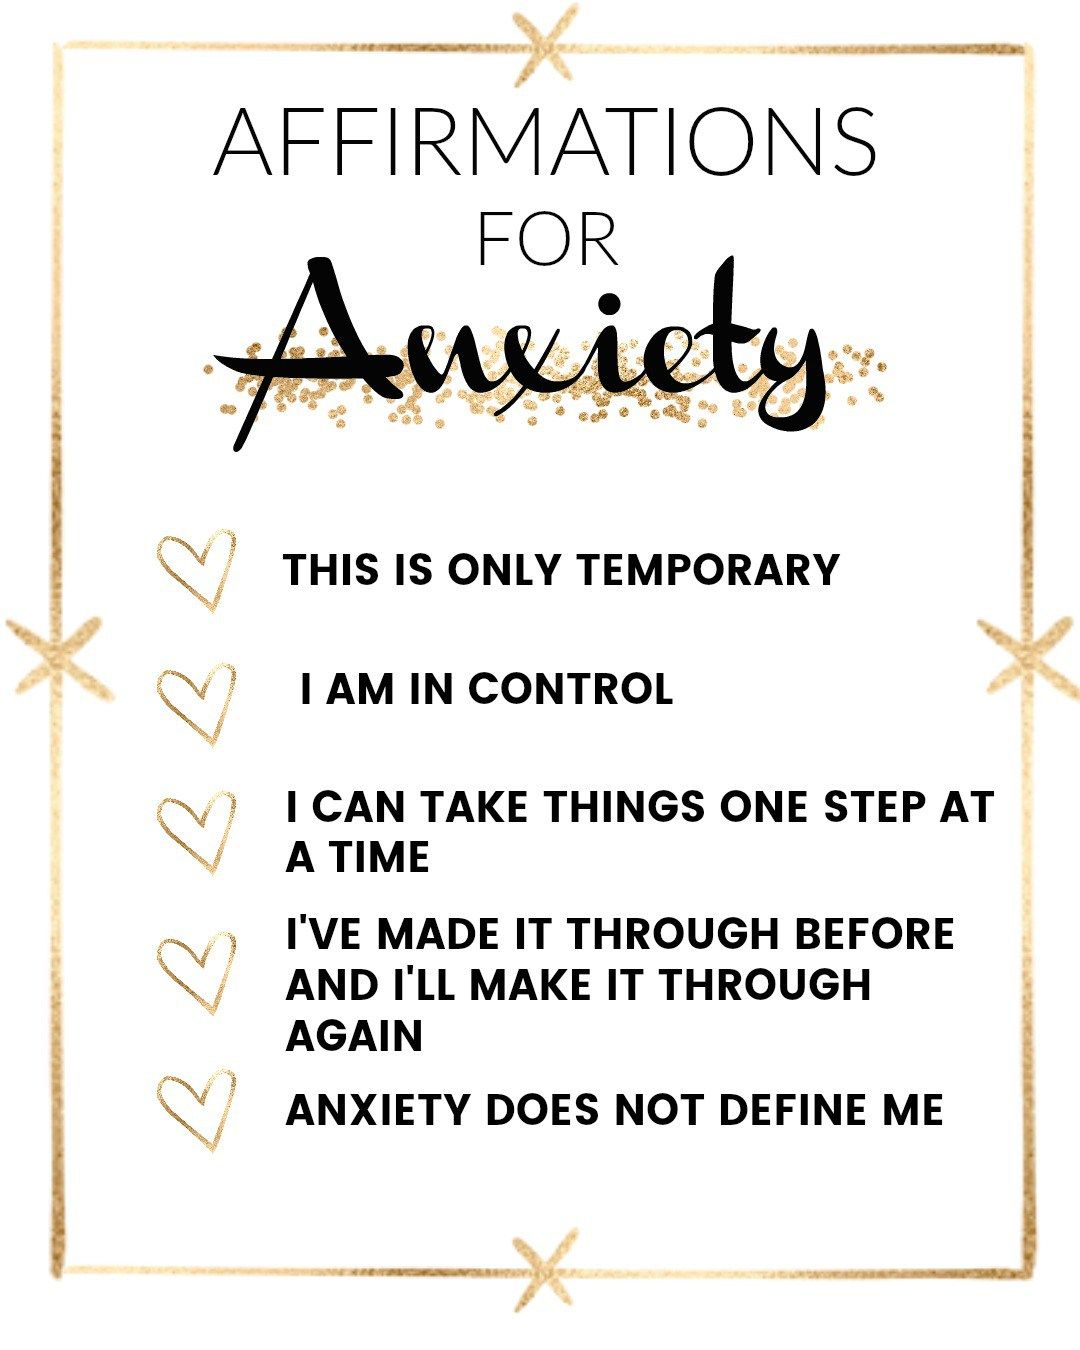 13 Simple Life Changes I Made To Relieve Anxiety